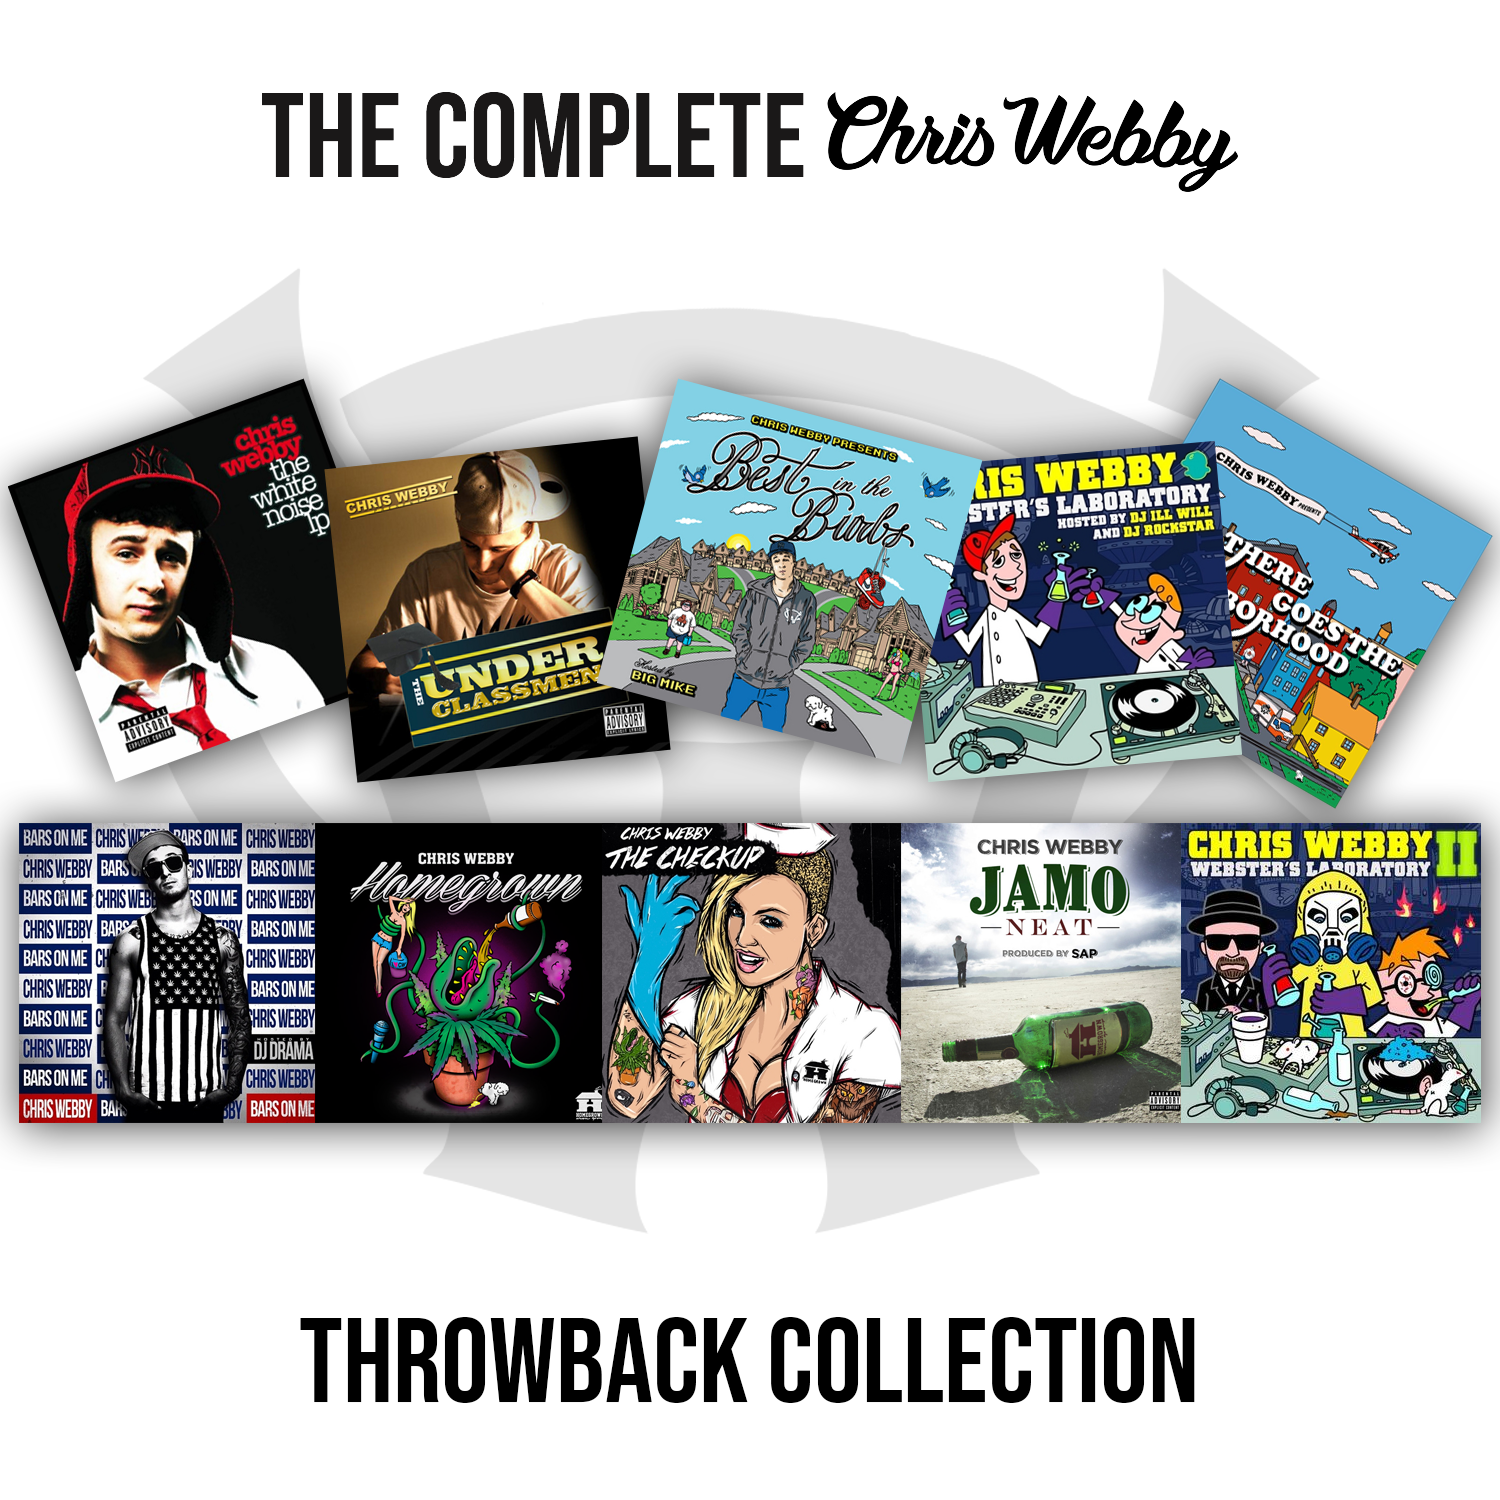 The Complete Chris Webby Signed CD Throwback Collection